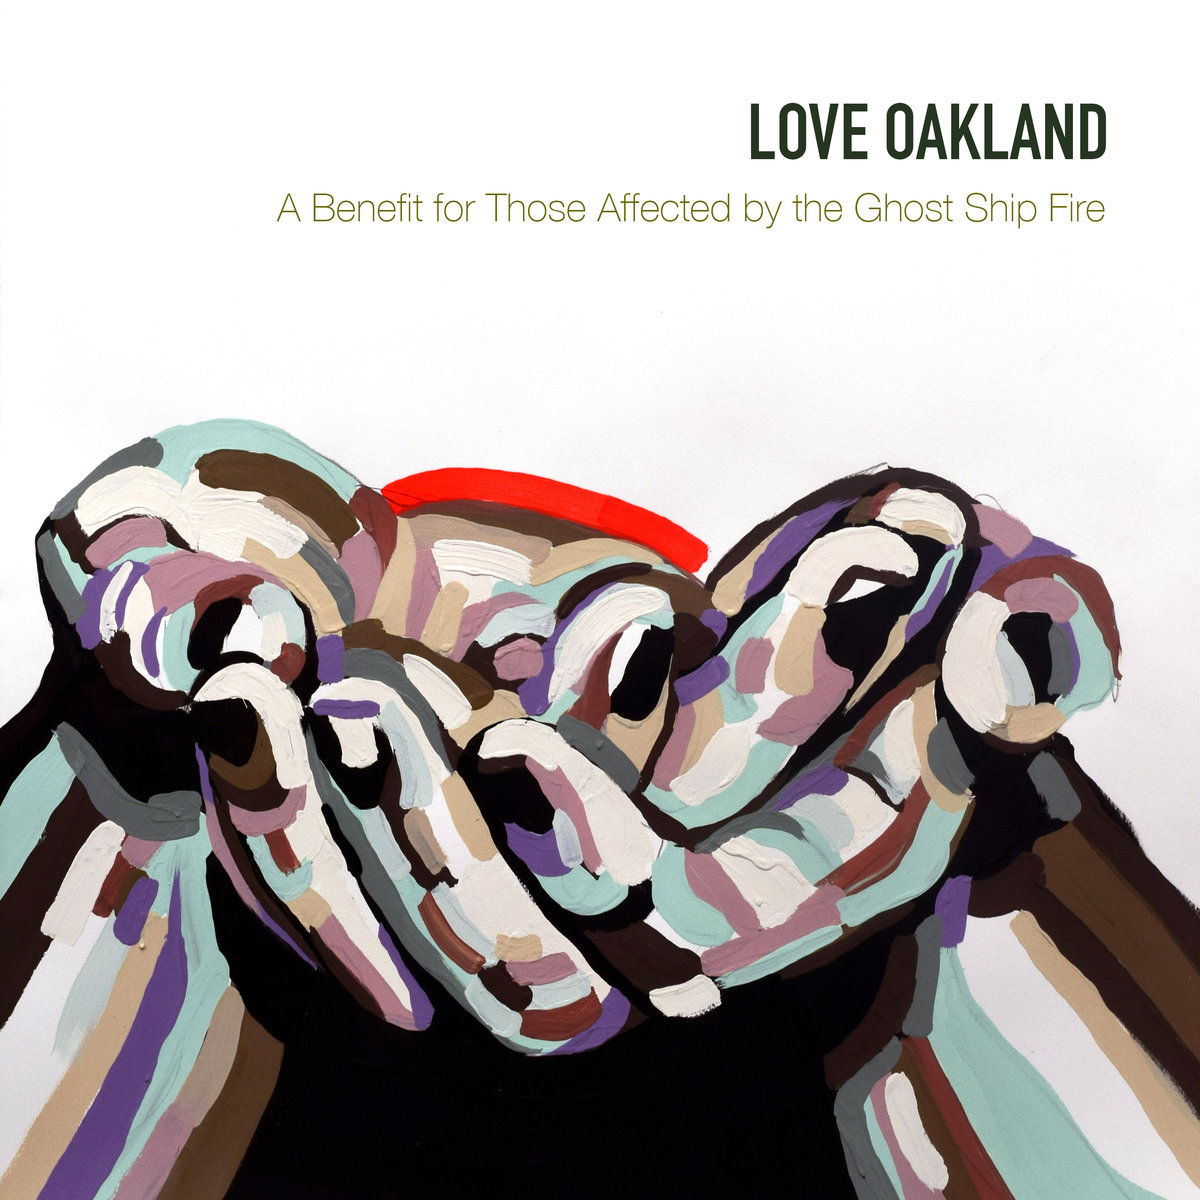 Love Oakland - A Benefit for Those Affected by the Ghost Ship Fire